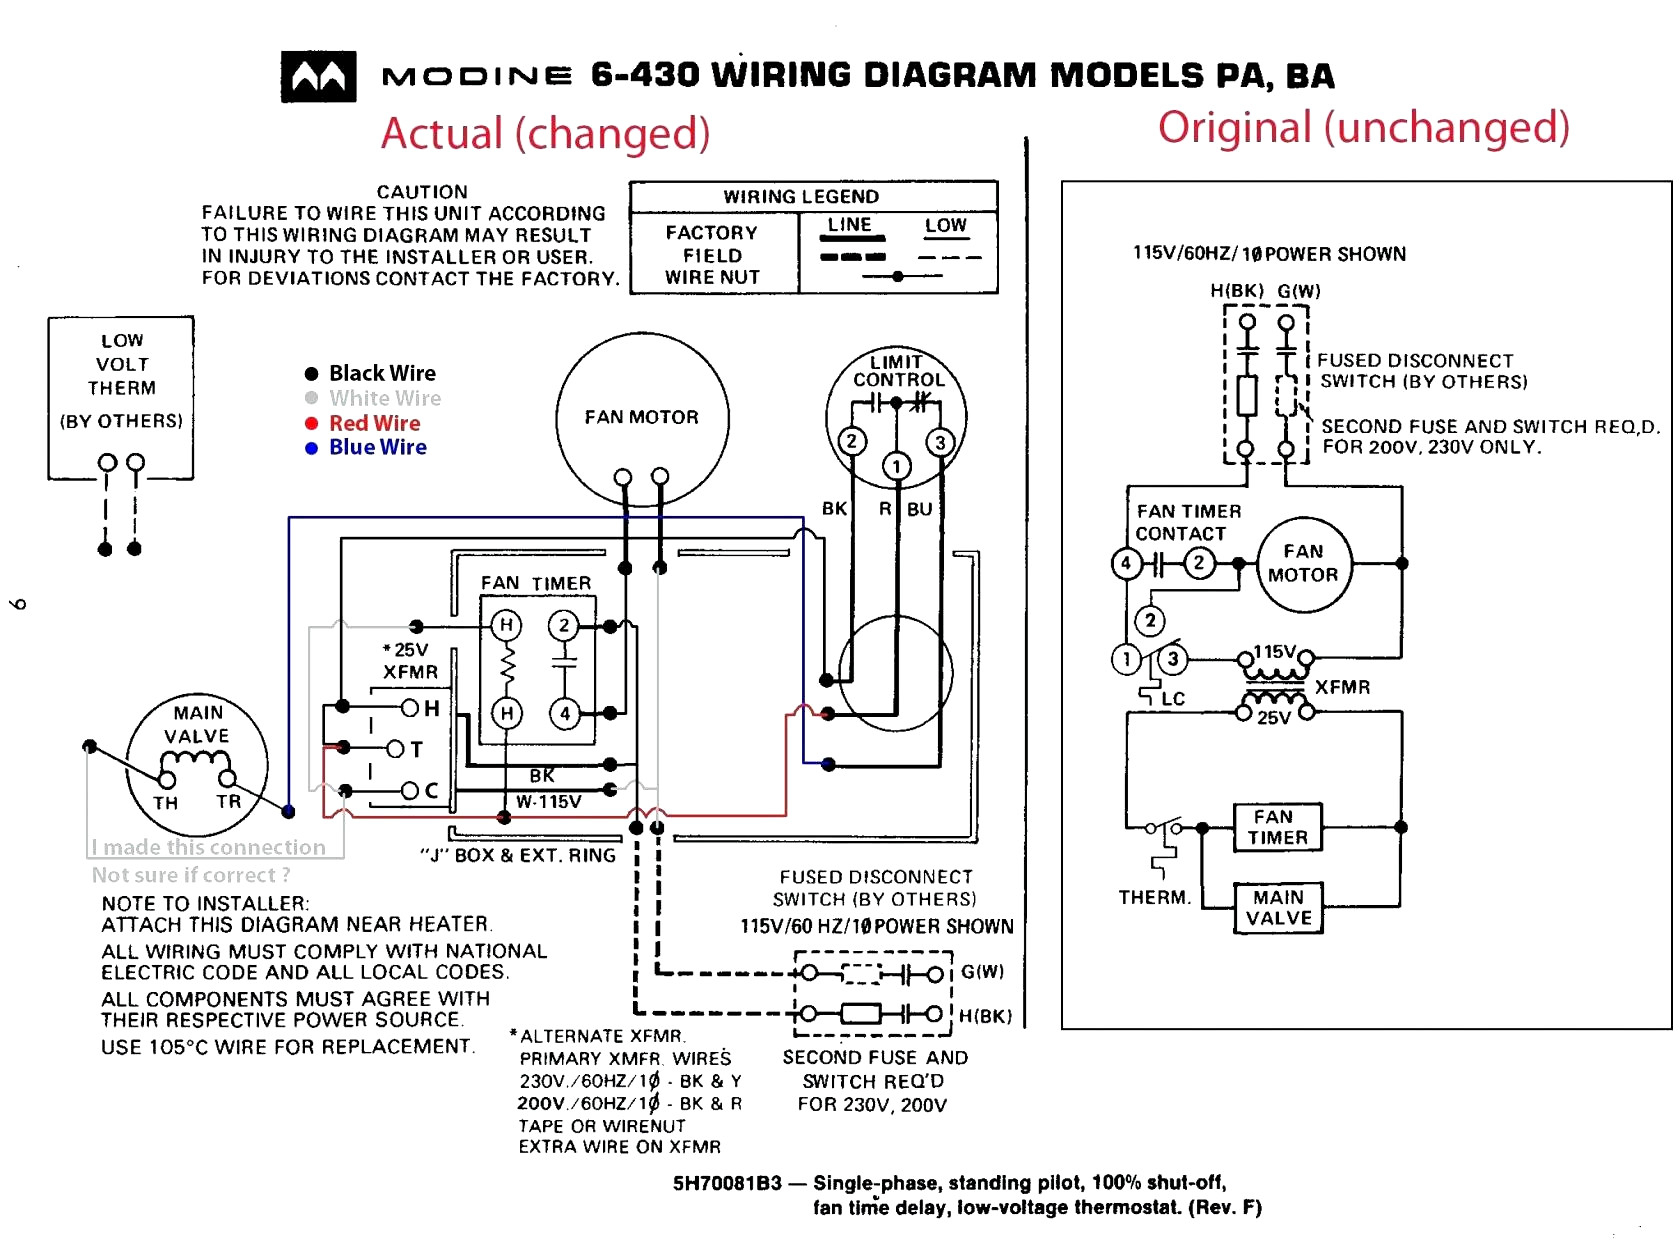 honeywell fan limit switch wiring diagram Collection-Ceiling Fan Installation Red Wire Luxury Honeywell Fan Limit Switch Wiring Diagram App A Light Control 7-l